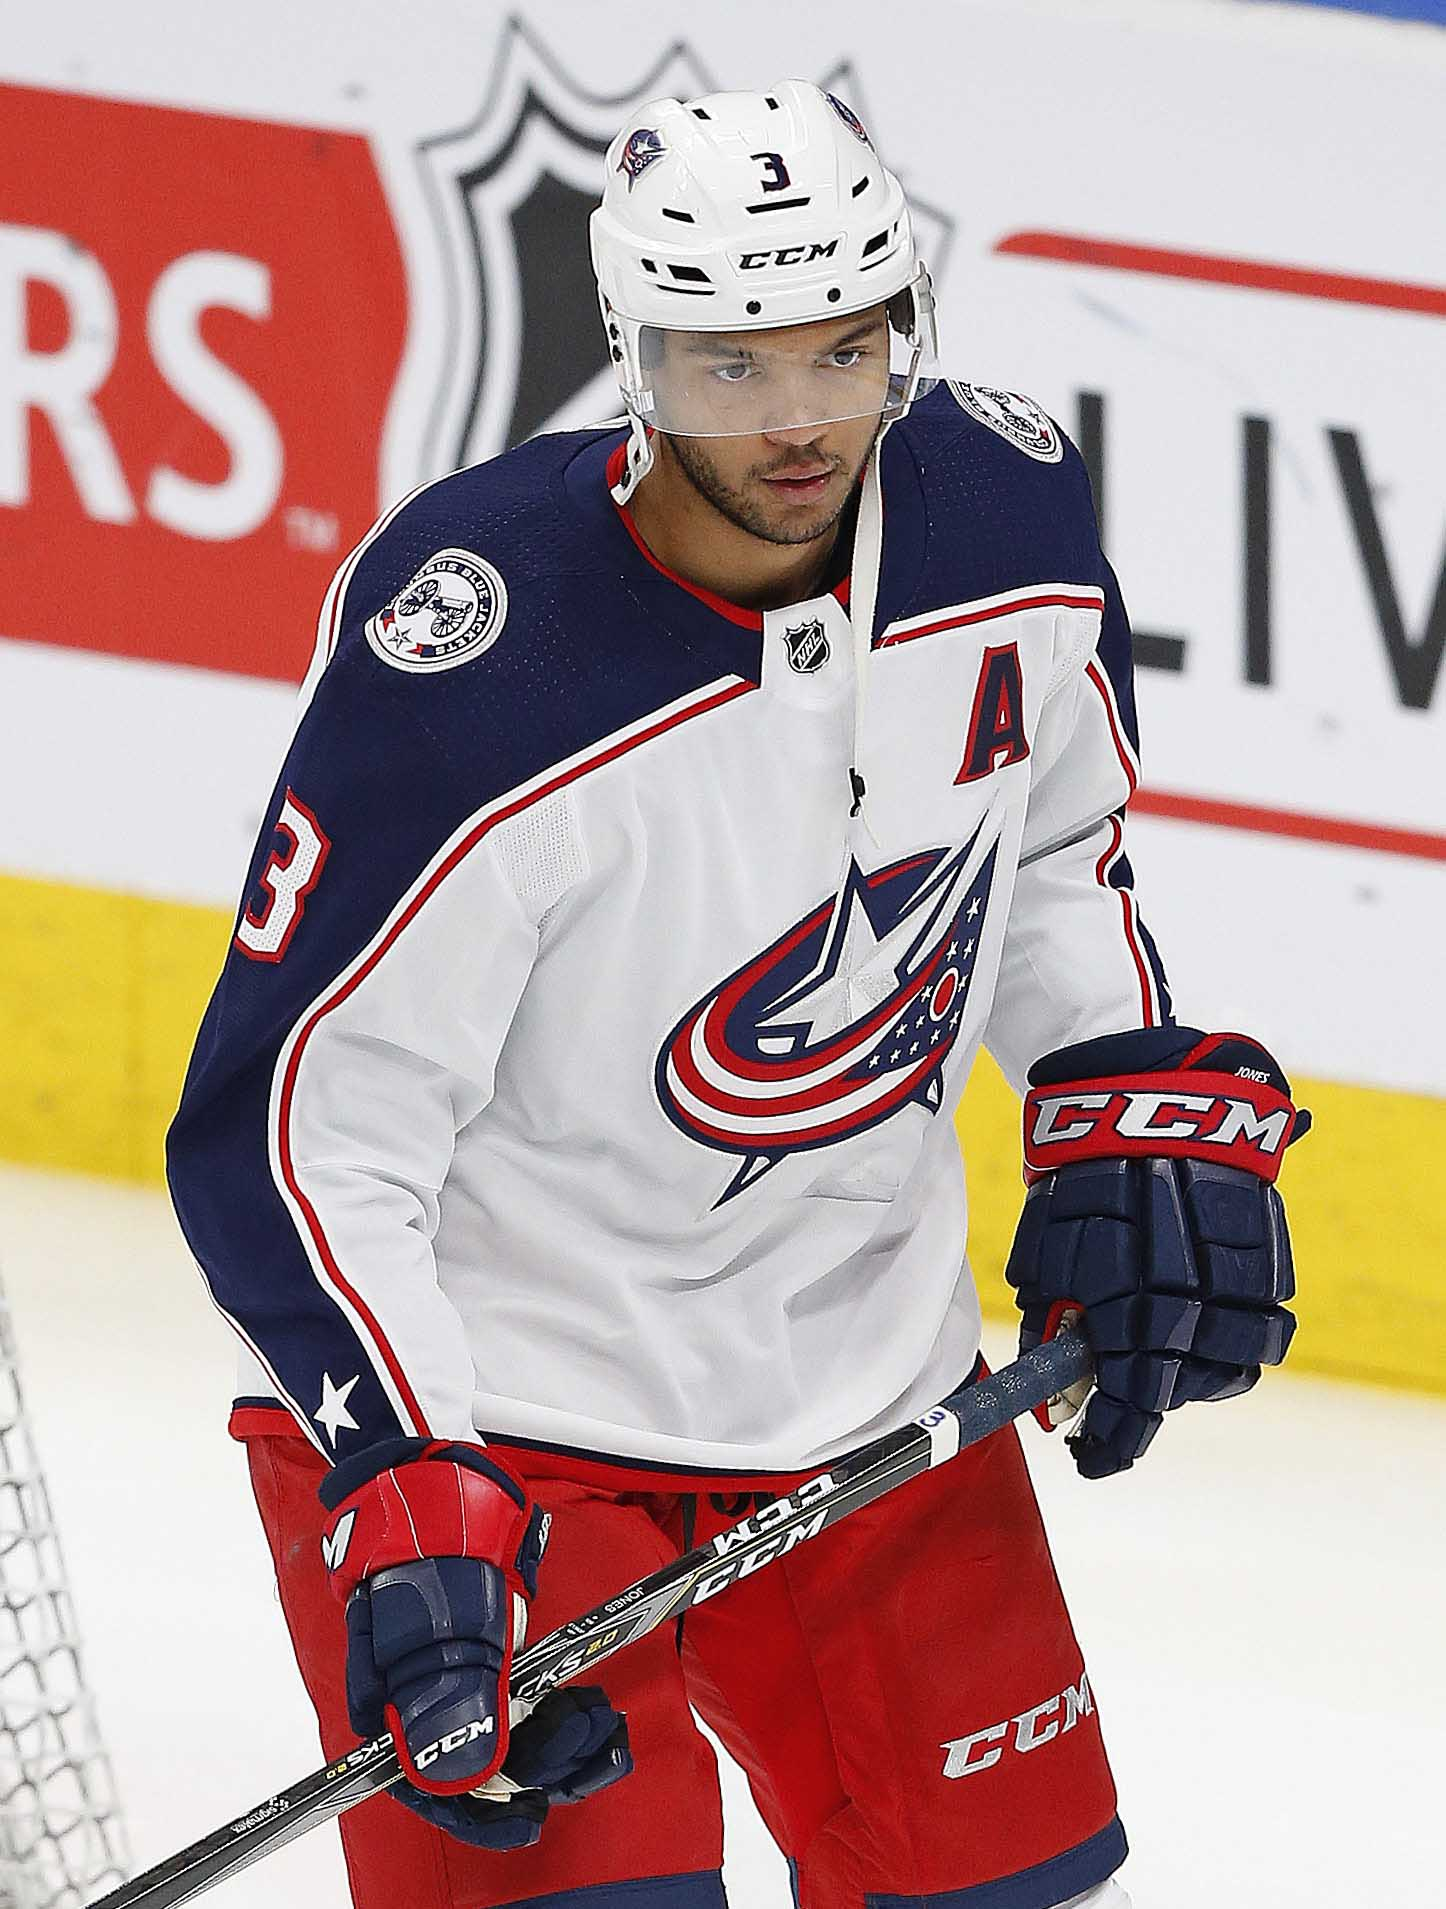 Jones had a breakout season for the Blue Jackets and could 1048fc8b9fe3